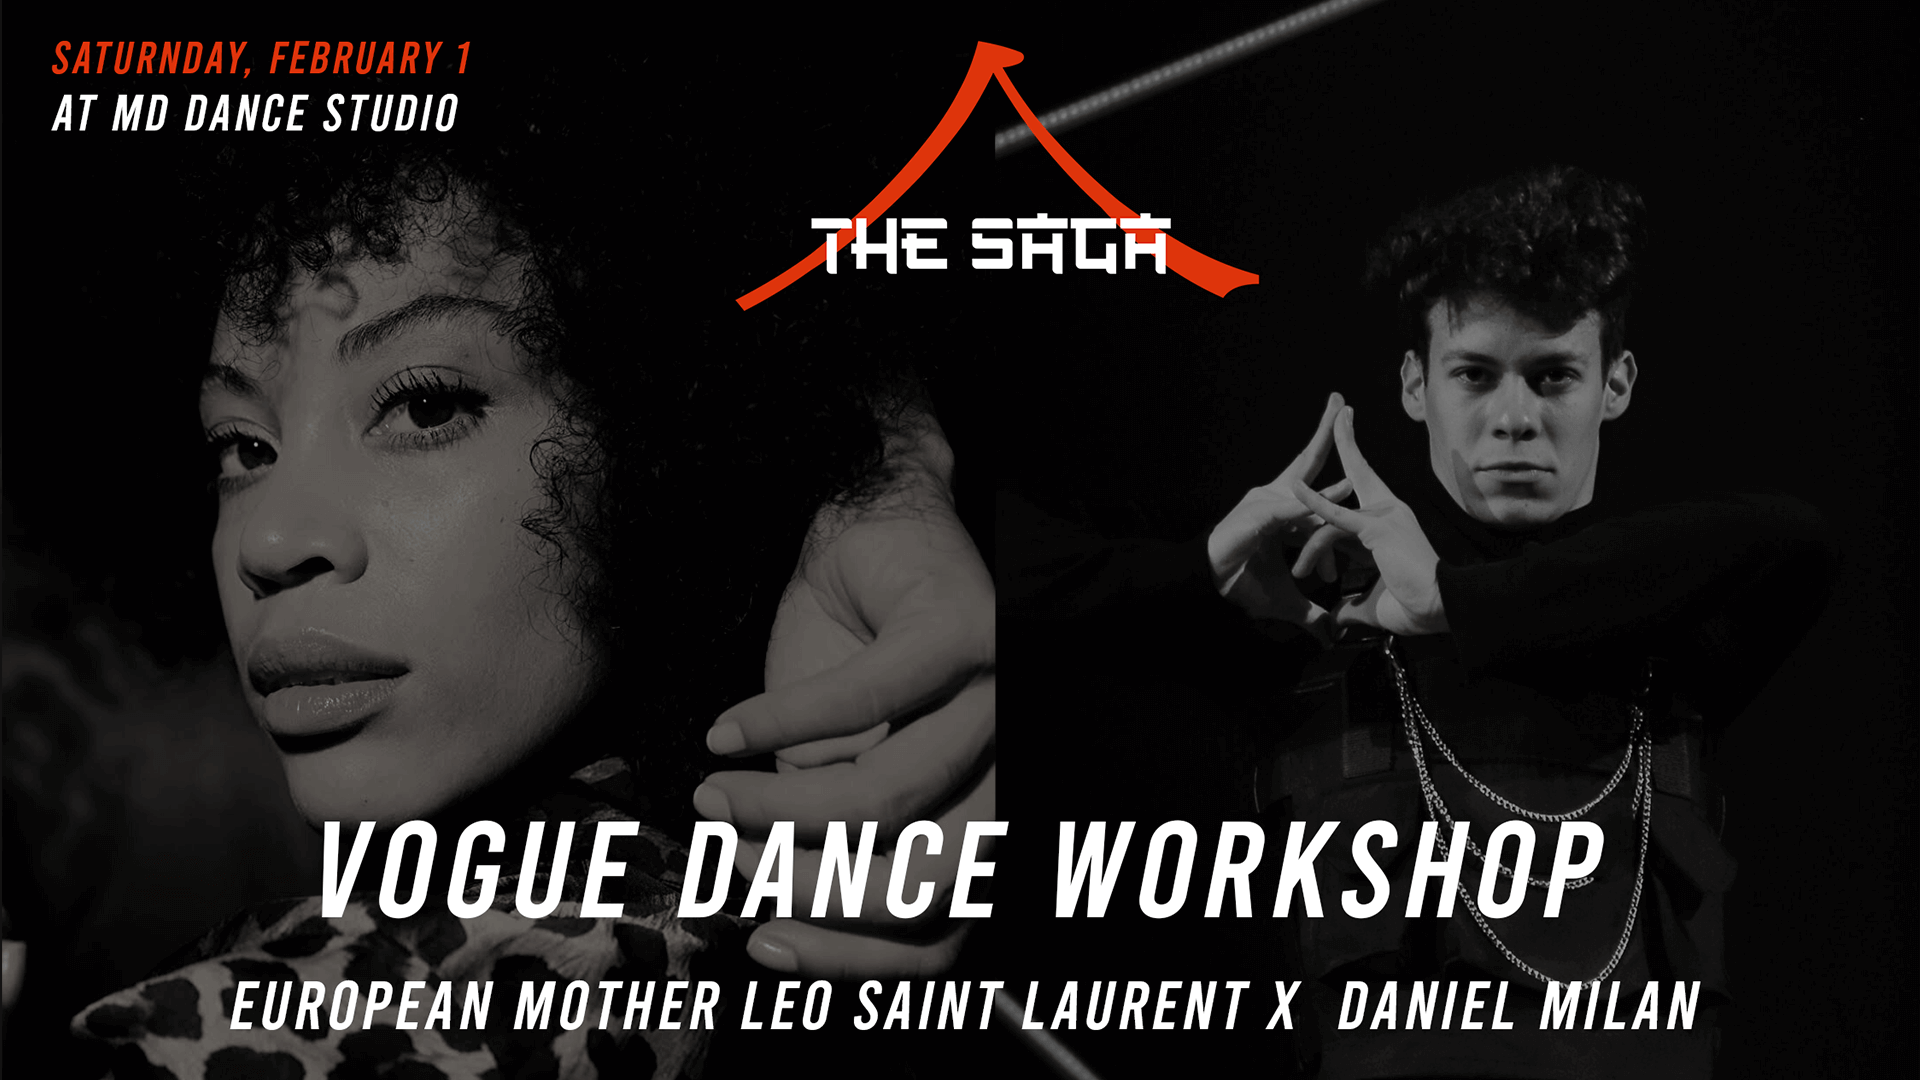 The Saga Vogue Dance Workshop – Leo Saint Laurent x Daniel Milan